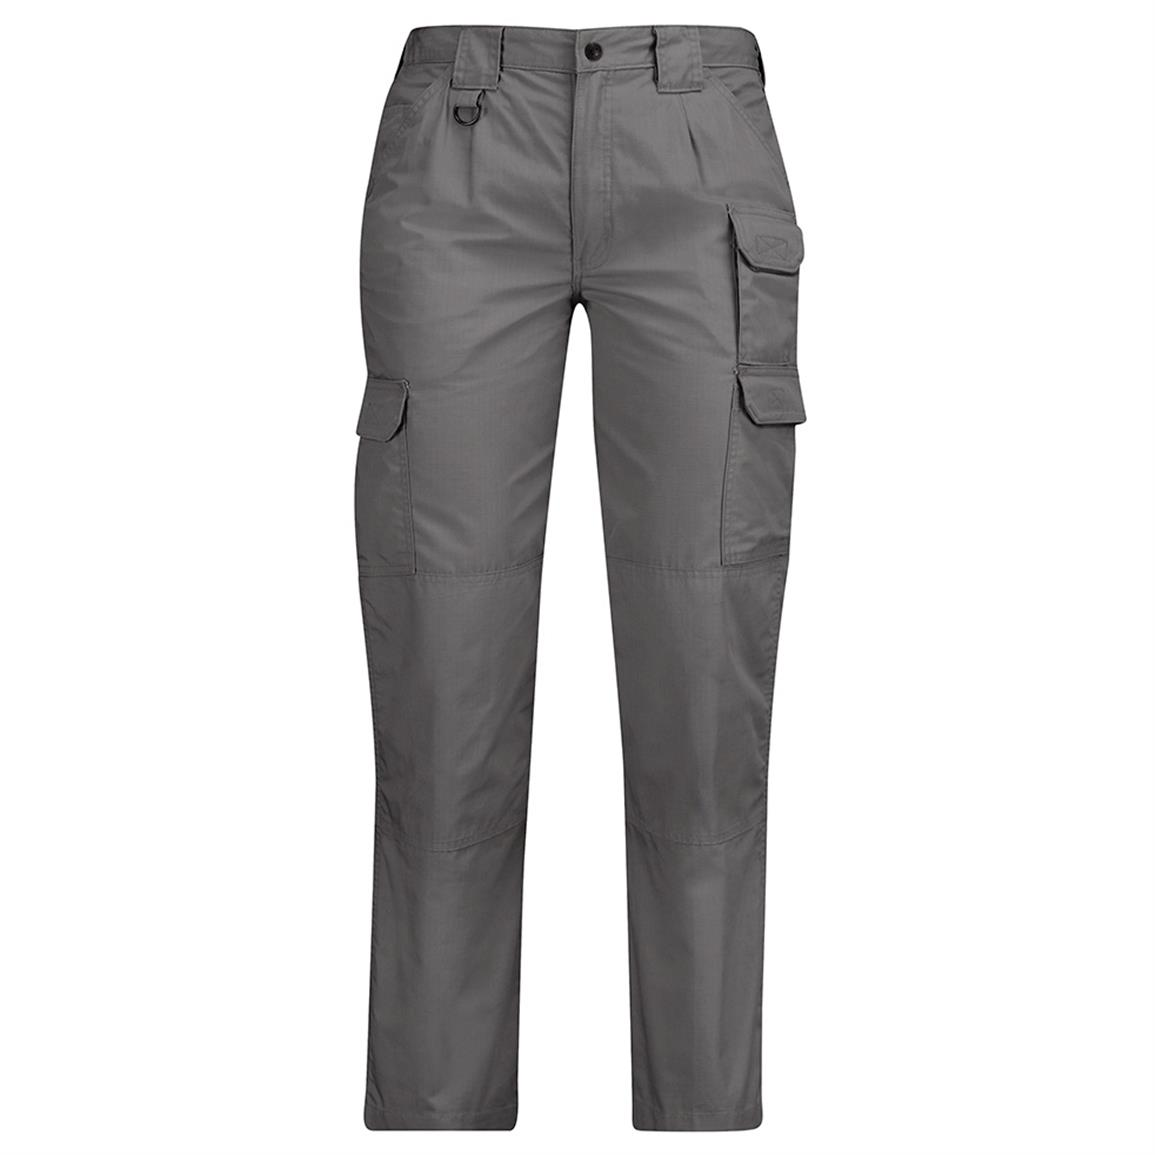 Propper Women's Lightweight Tactical Pants, Charcoal